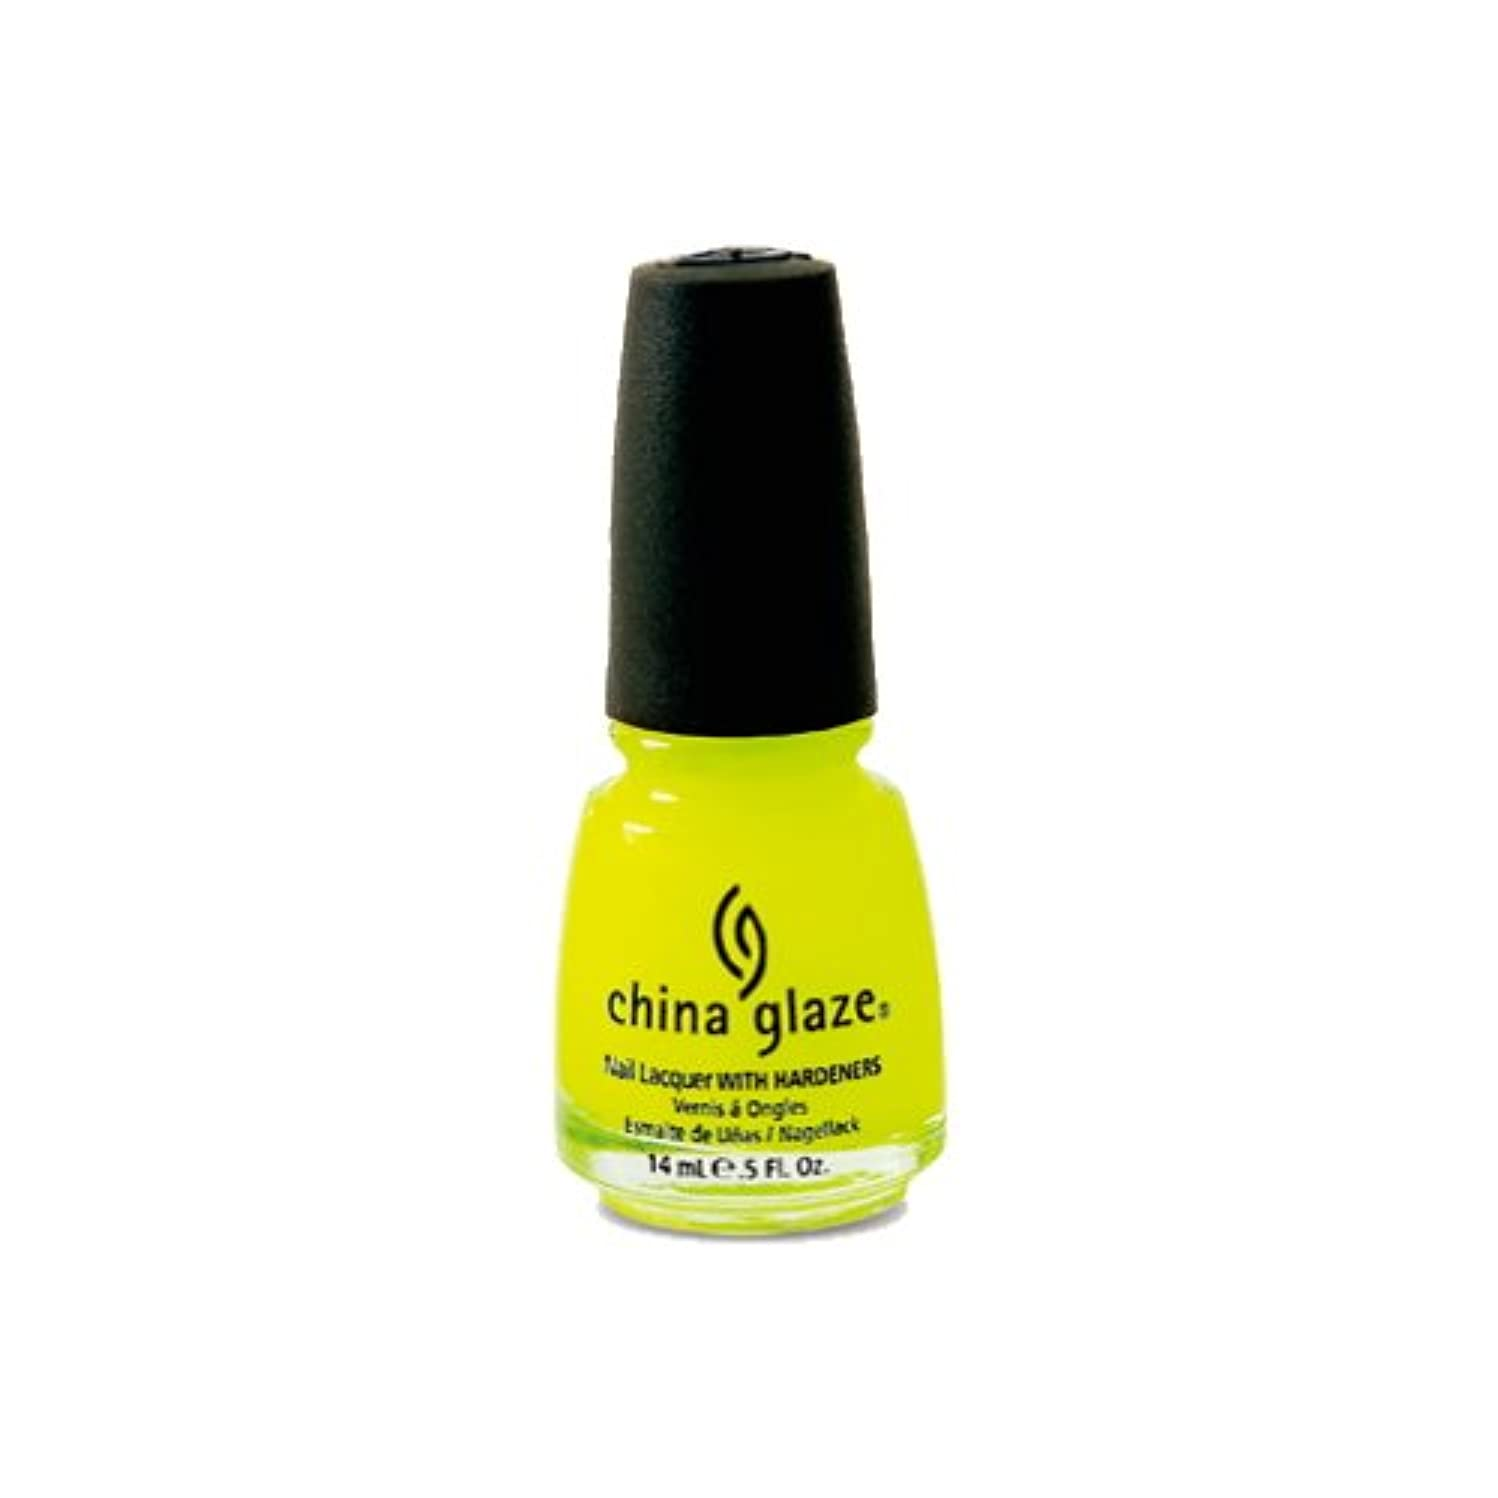 乙女パーセント影響力のあるCHINA GLAZE Nail Lacquer with Nail Hardner 2 - Celtic Sun (並行輸入品)